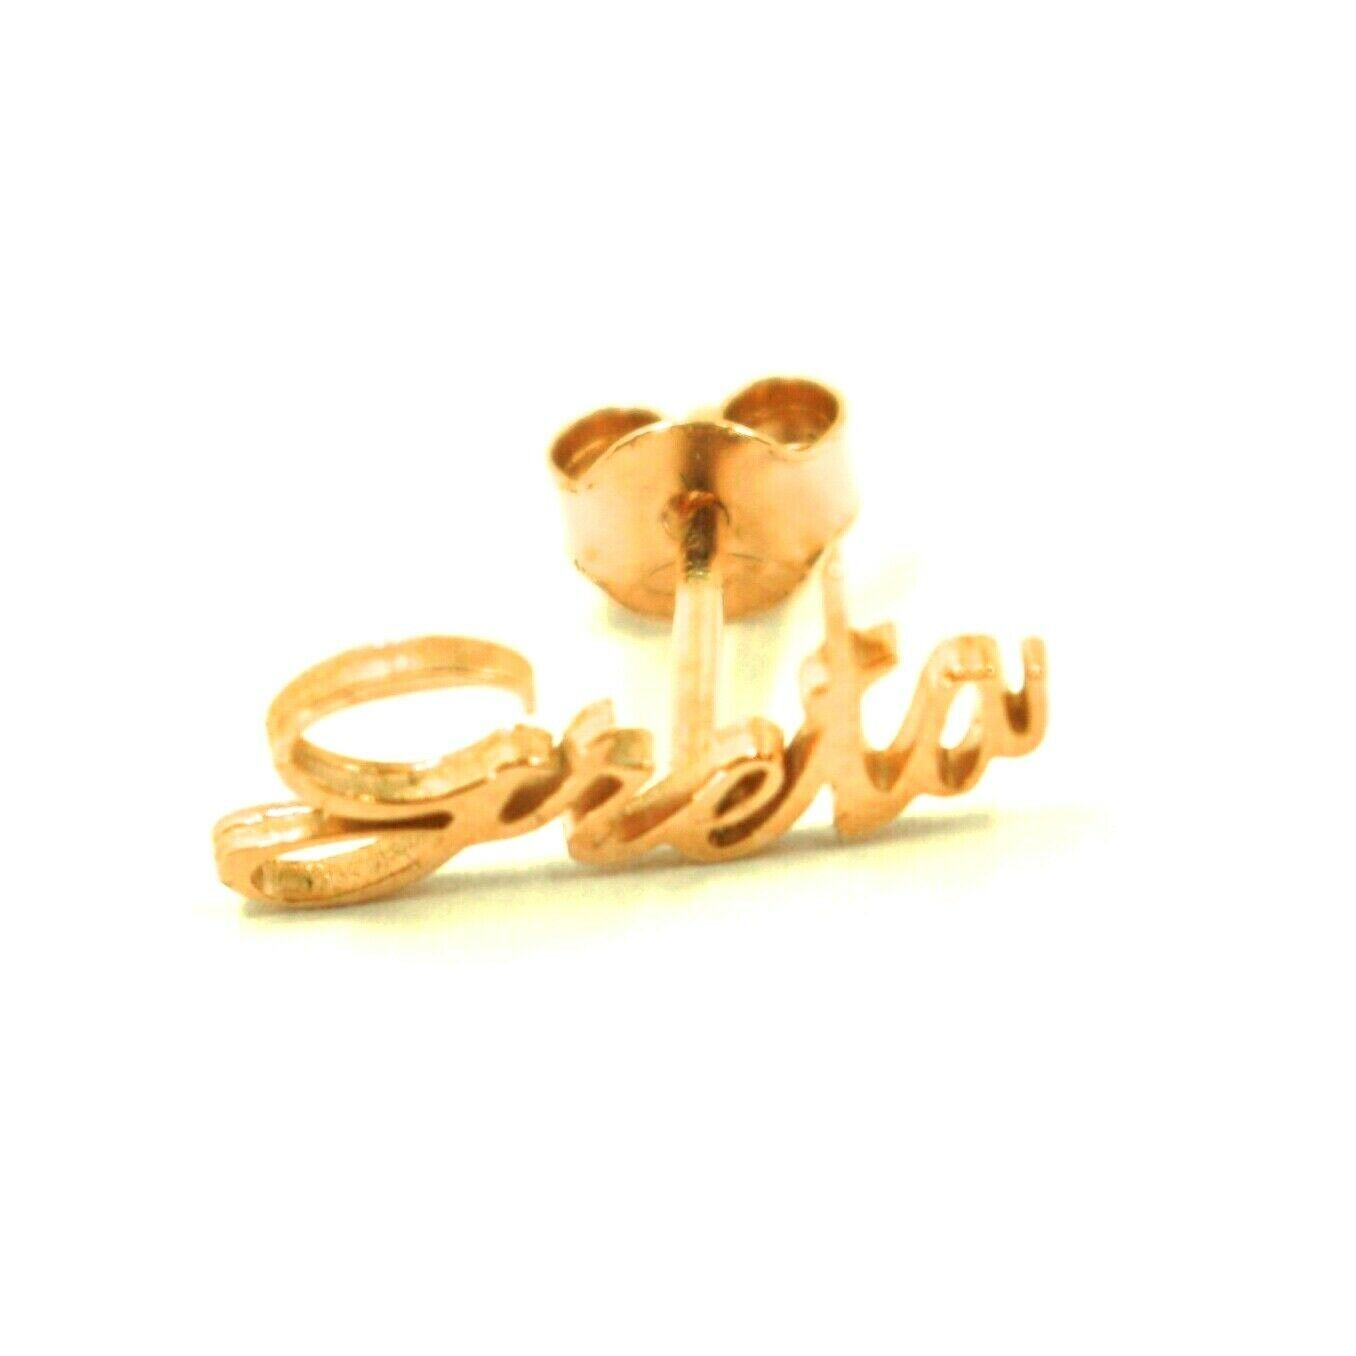 925 STERLING SILVER YELLOW EARRINGS, WRITTEN NAME GRETA, MADE IN ITALY